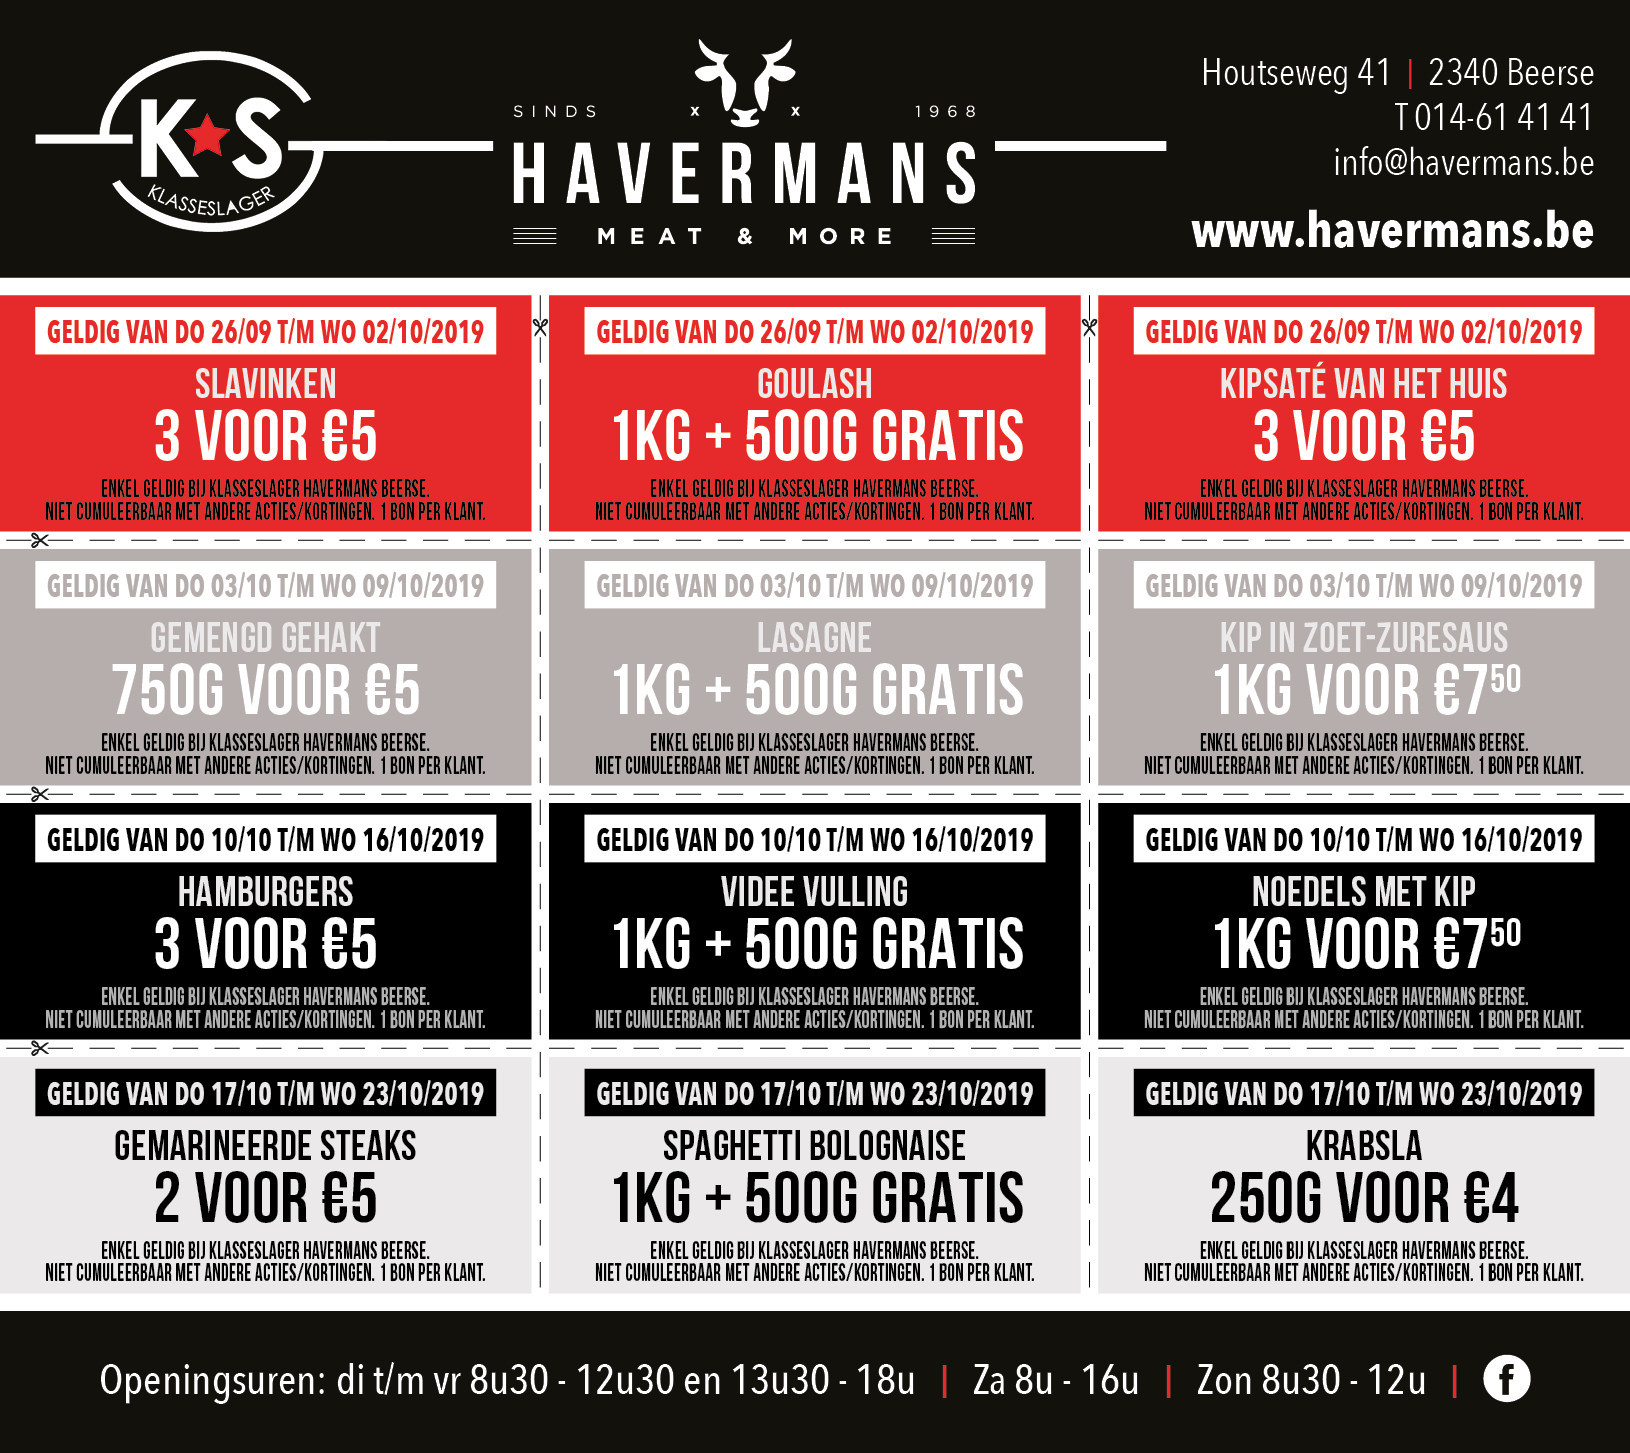 havermans_klasseslager_beerse_sept_2019.jpg